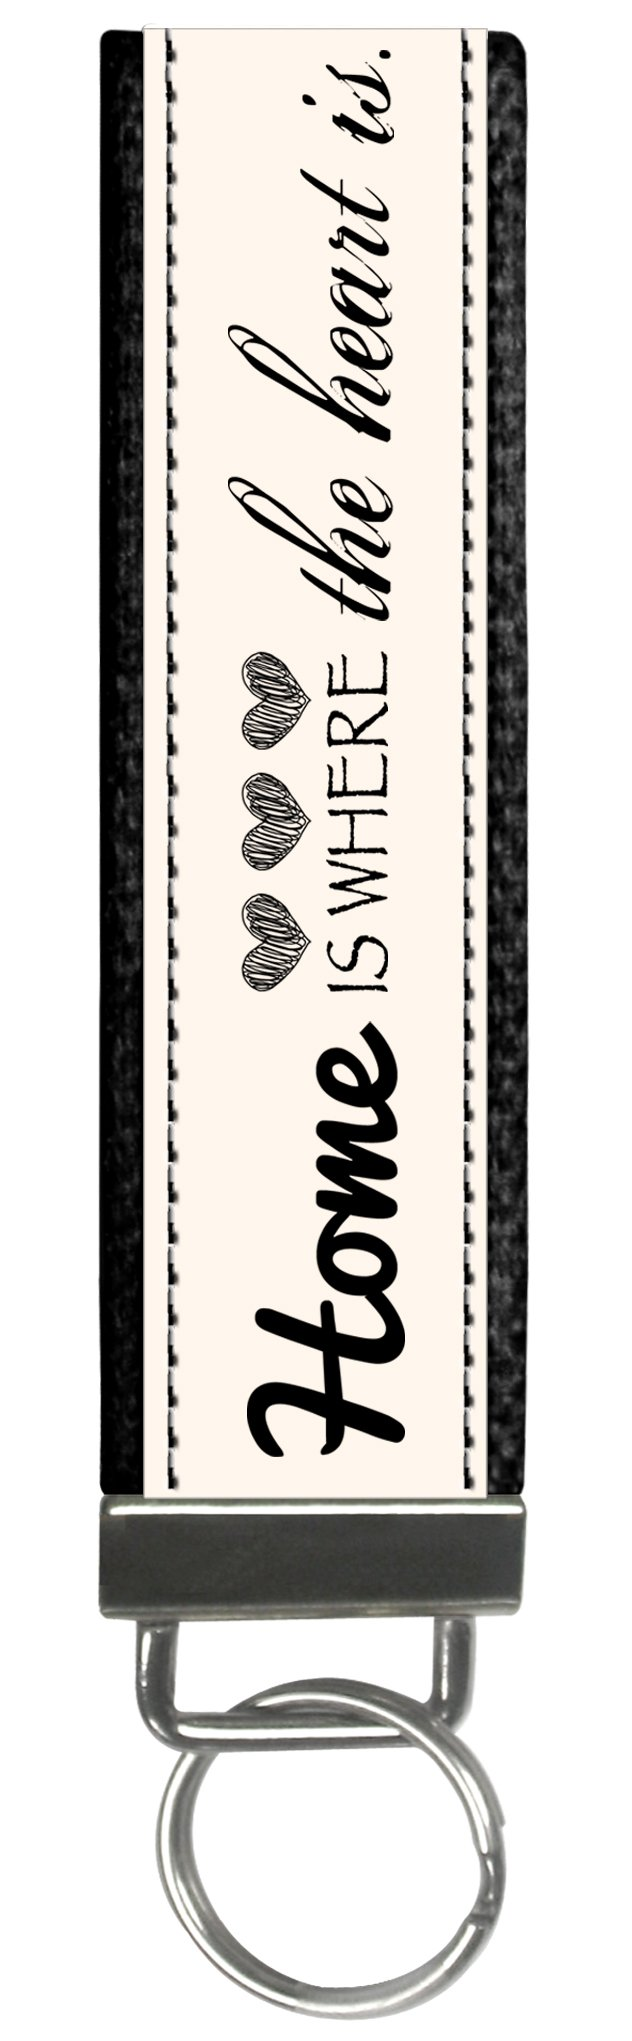 Snaptotes Trendy Motivational Home is where your Heart is Wristlet Keychain by Snaptotes (Image #1)